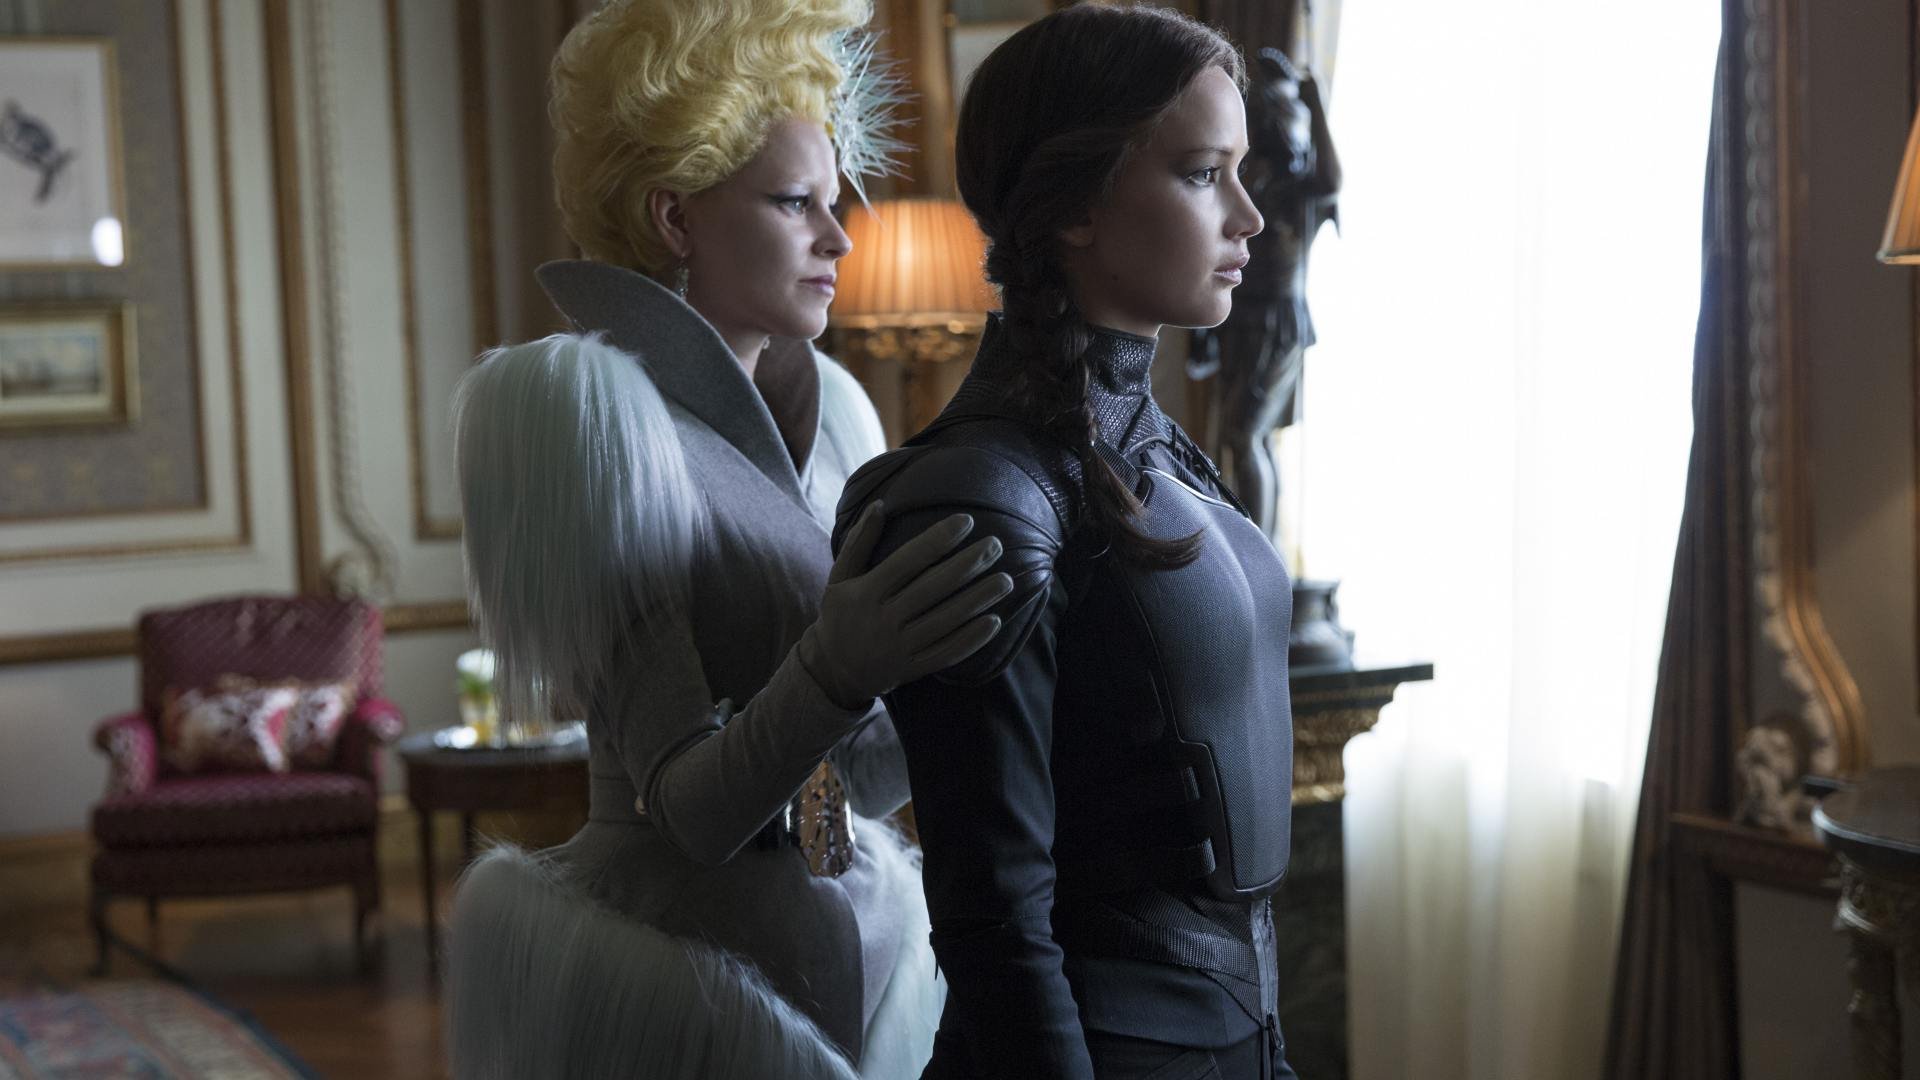 Box Office USA Mockingjay Teil 2 Startwochenende